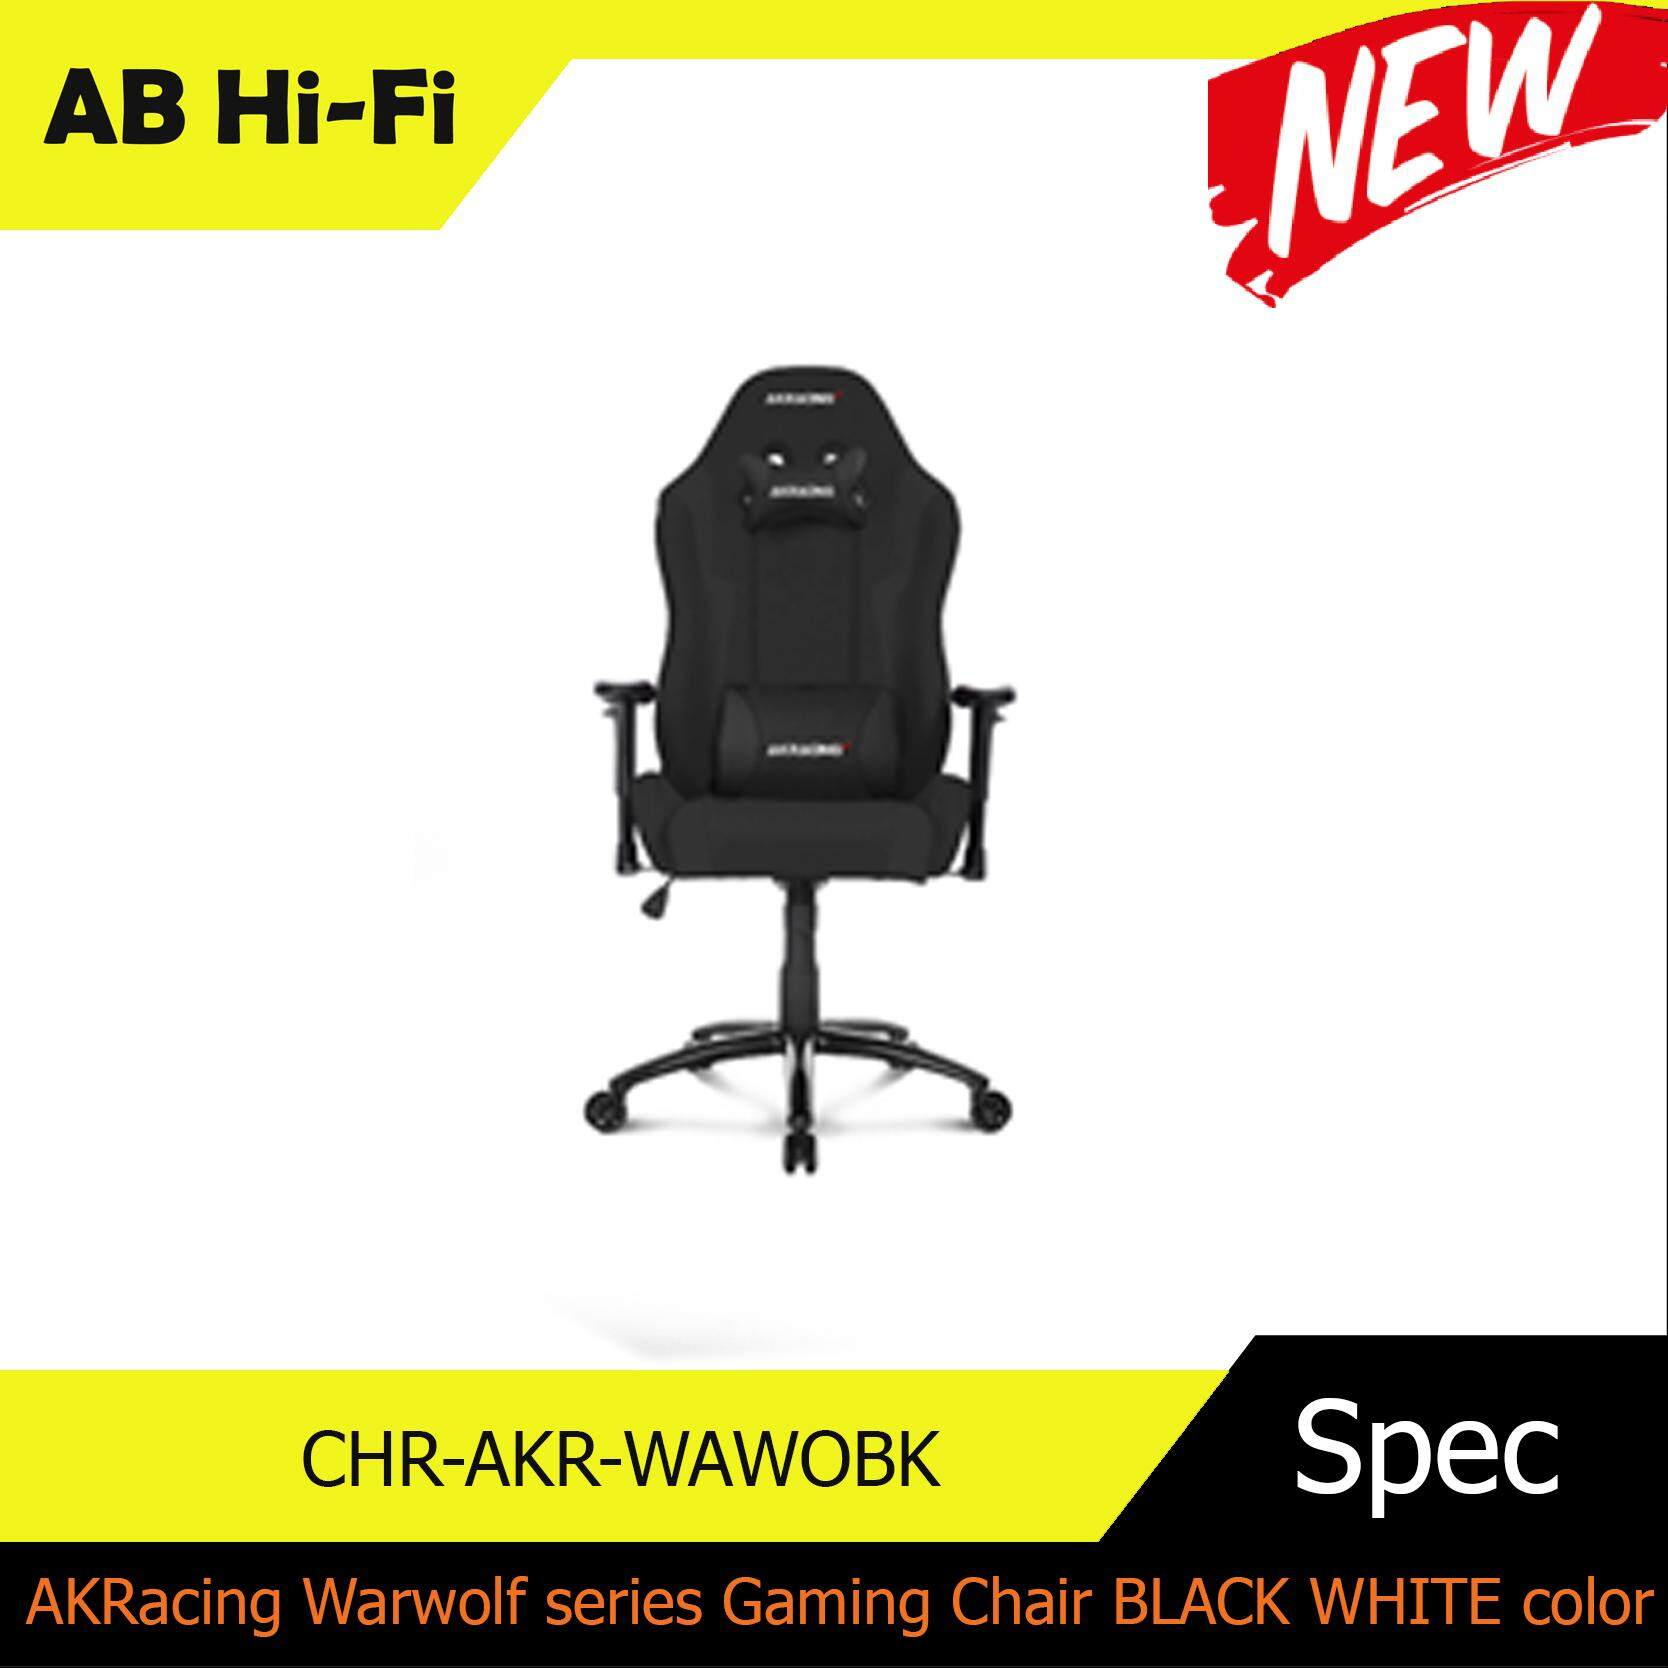 ยี่ห้อนี้ดีไหม  AKRacing Warwolf series Gaming Chair BLACK WHITE color